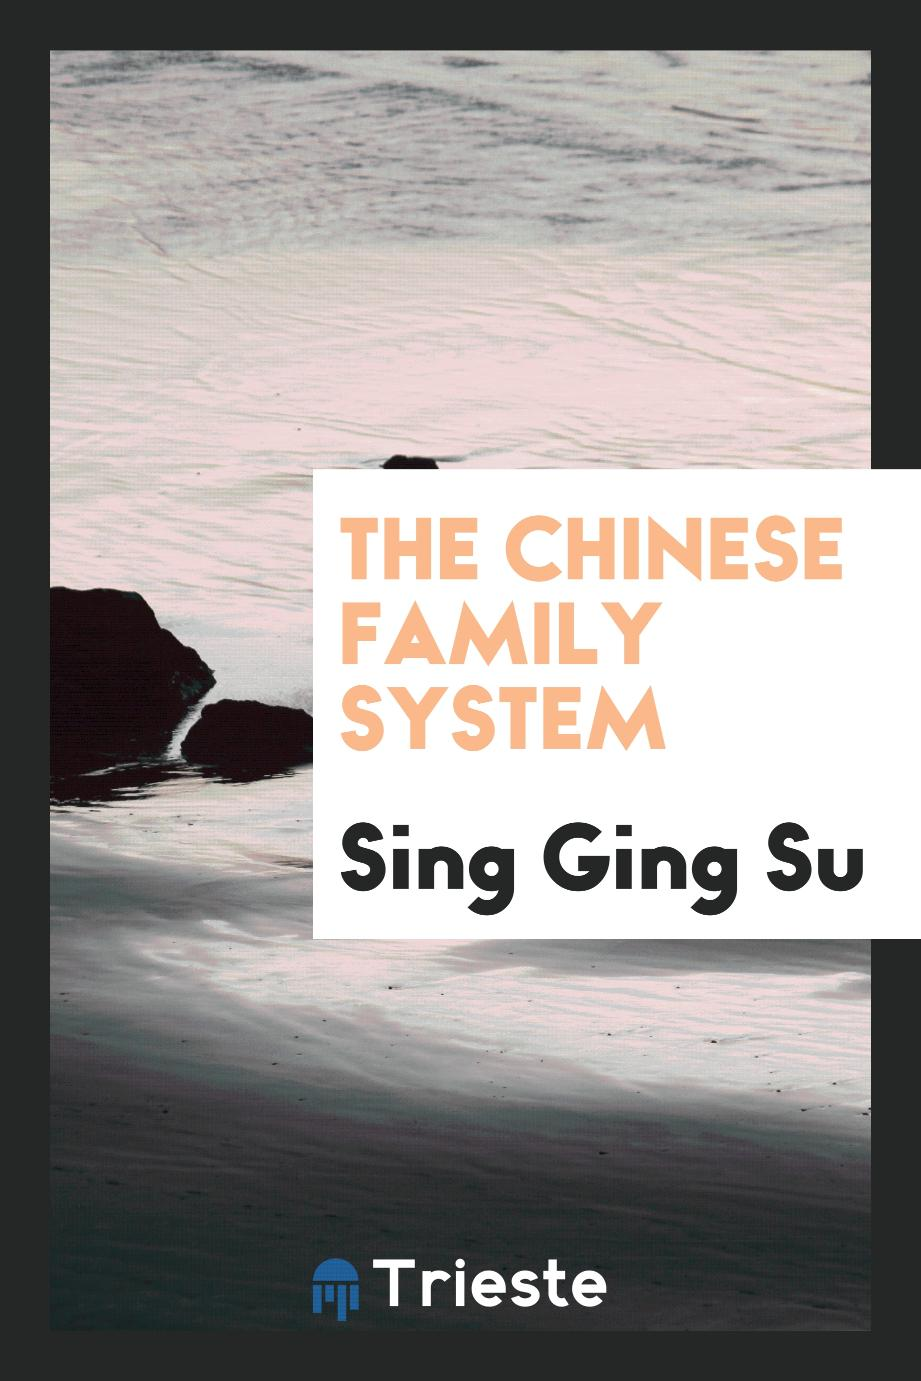 The Chinese Family System